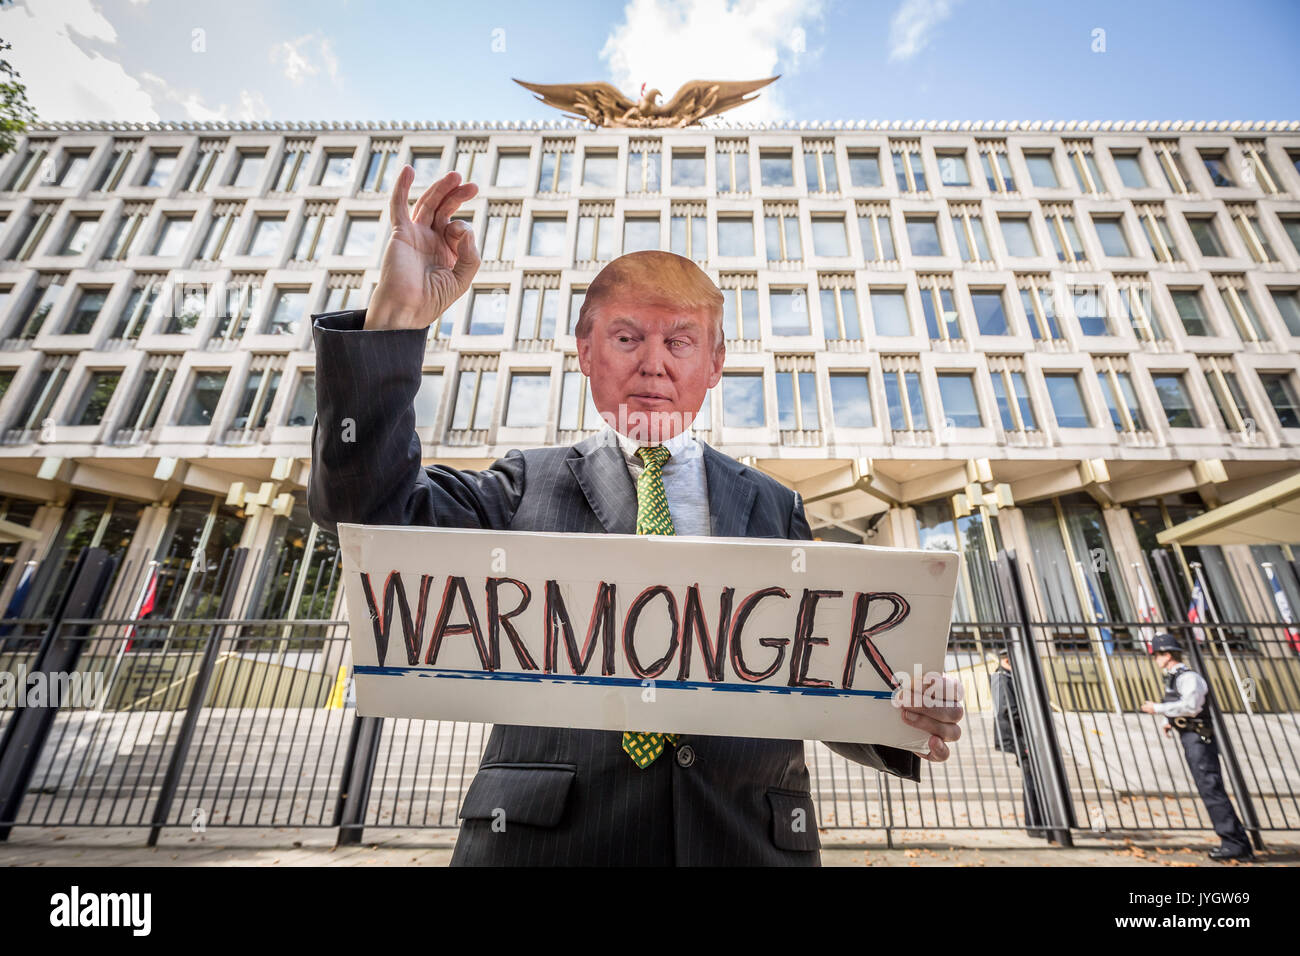 London, UK. 19th Aug, 2017. Anti-Trump protest 'Stand Up to Trump - No To Racism, No to War' outside U.S. Embassy Credit: Guy Corbishley/Alamy Live News - Stock Image